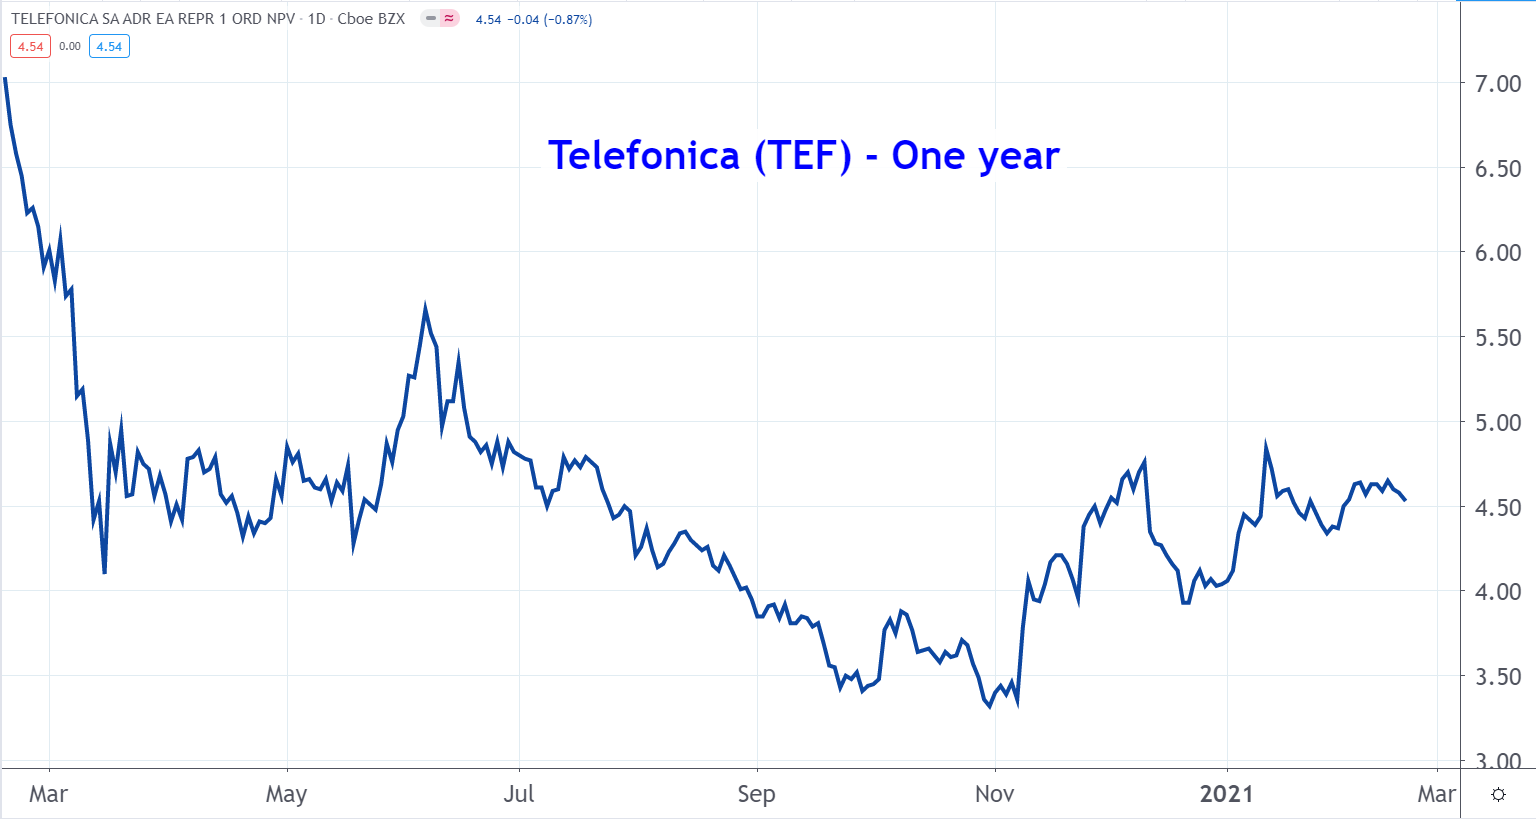 Line graph of Telefonica stock price from March 2020 to March 2021, showing a steady climb in recent months after reaching a year-low in November